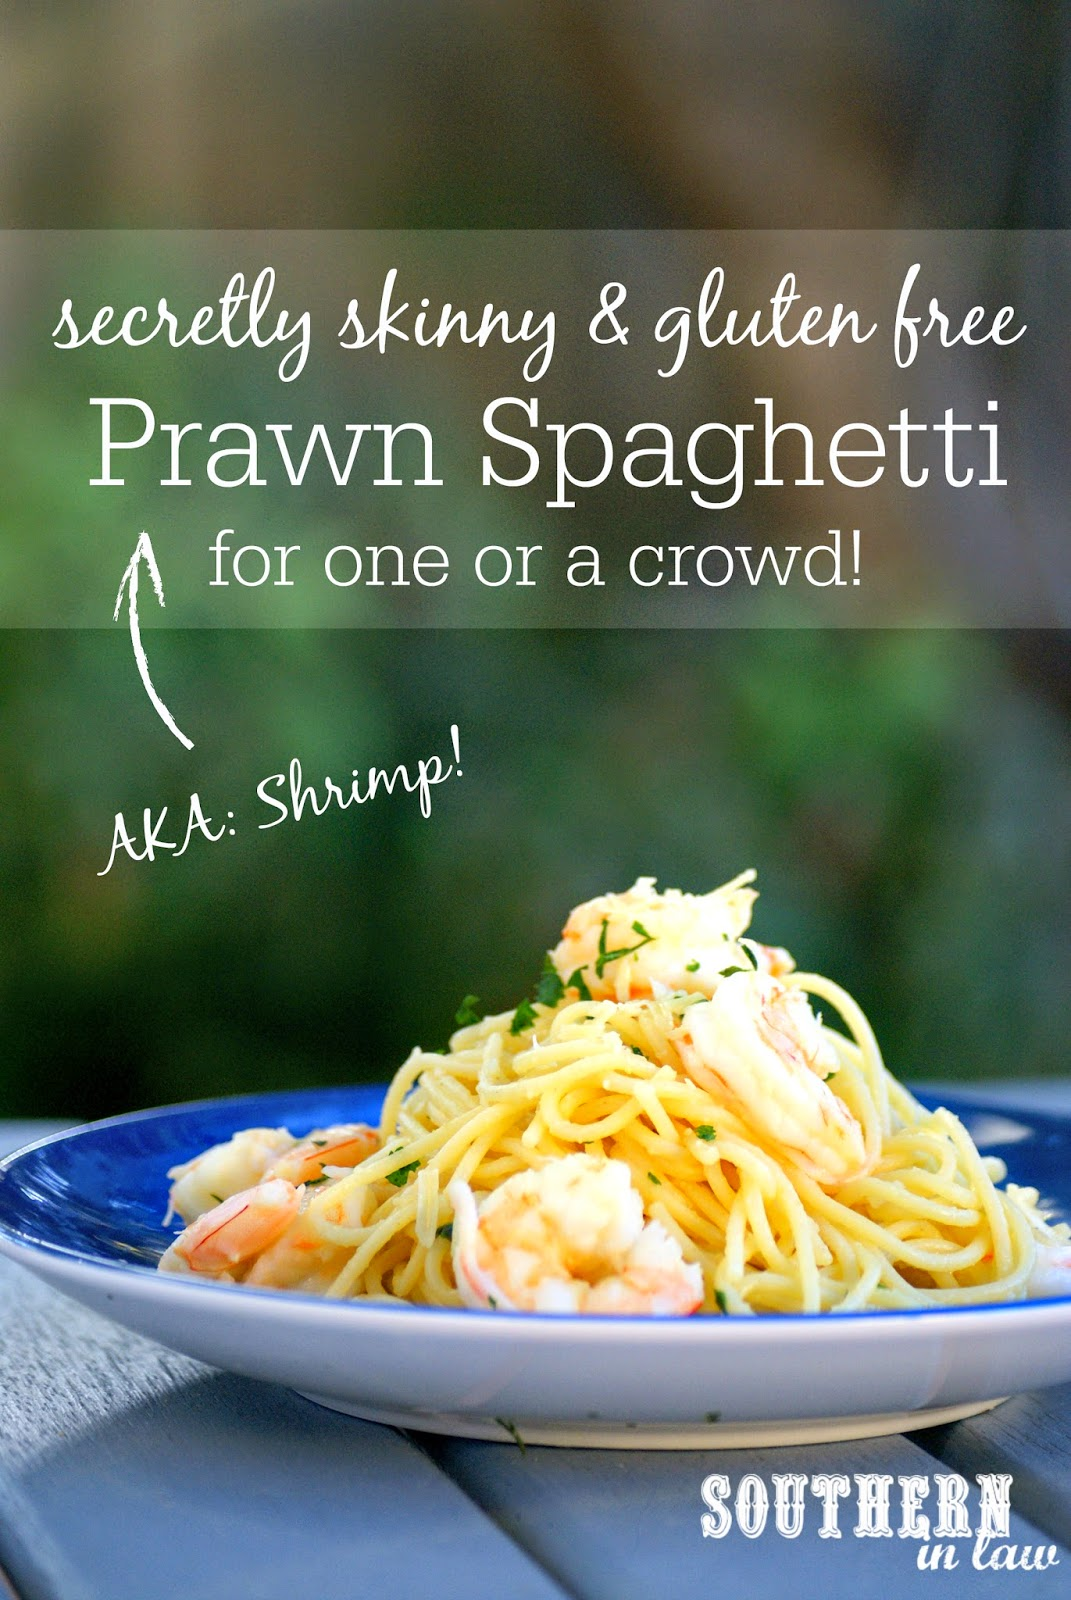 Lightened Up Prawn Spaghetti Recipe - gluten free, low fat, clean eating friendly, healthy spaghetti recipe